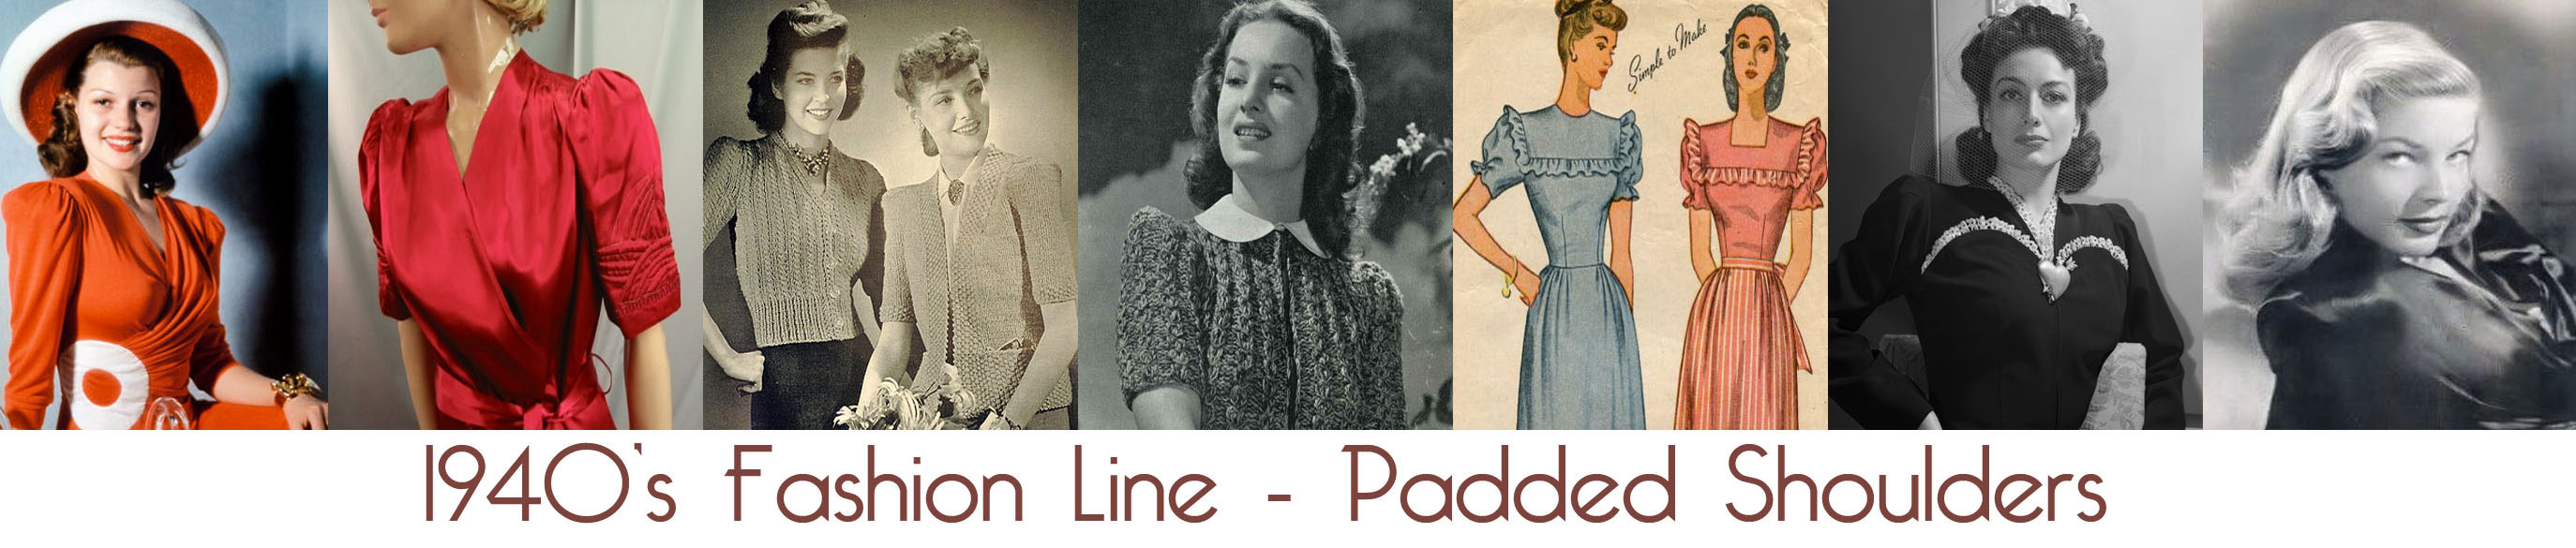 Glamour Daze: 1940's fashion - Womens Dress Code in the War Years